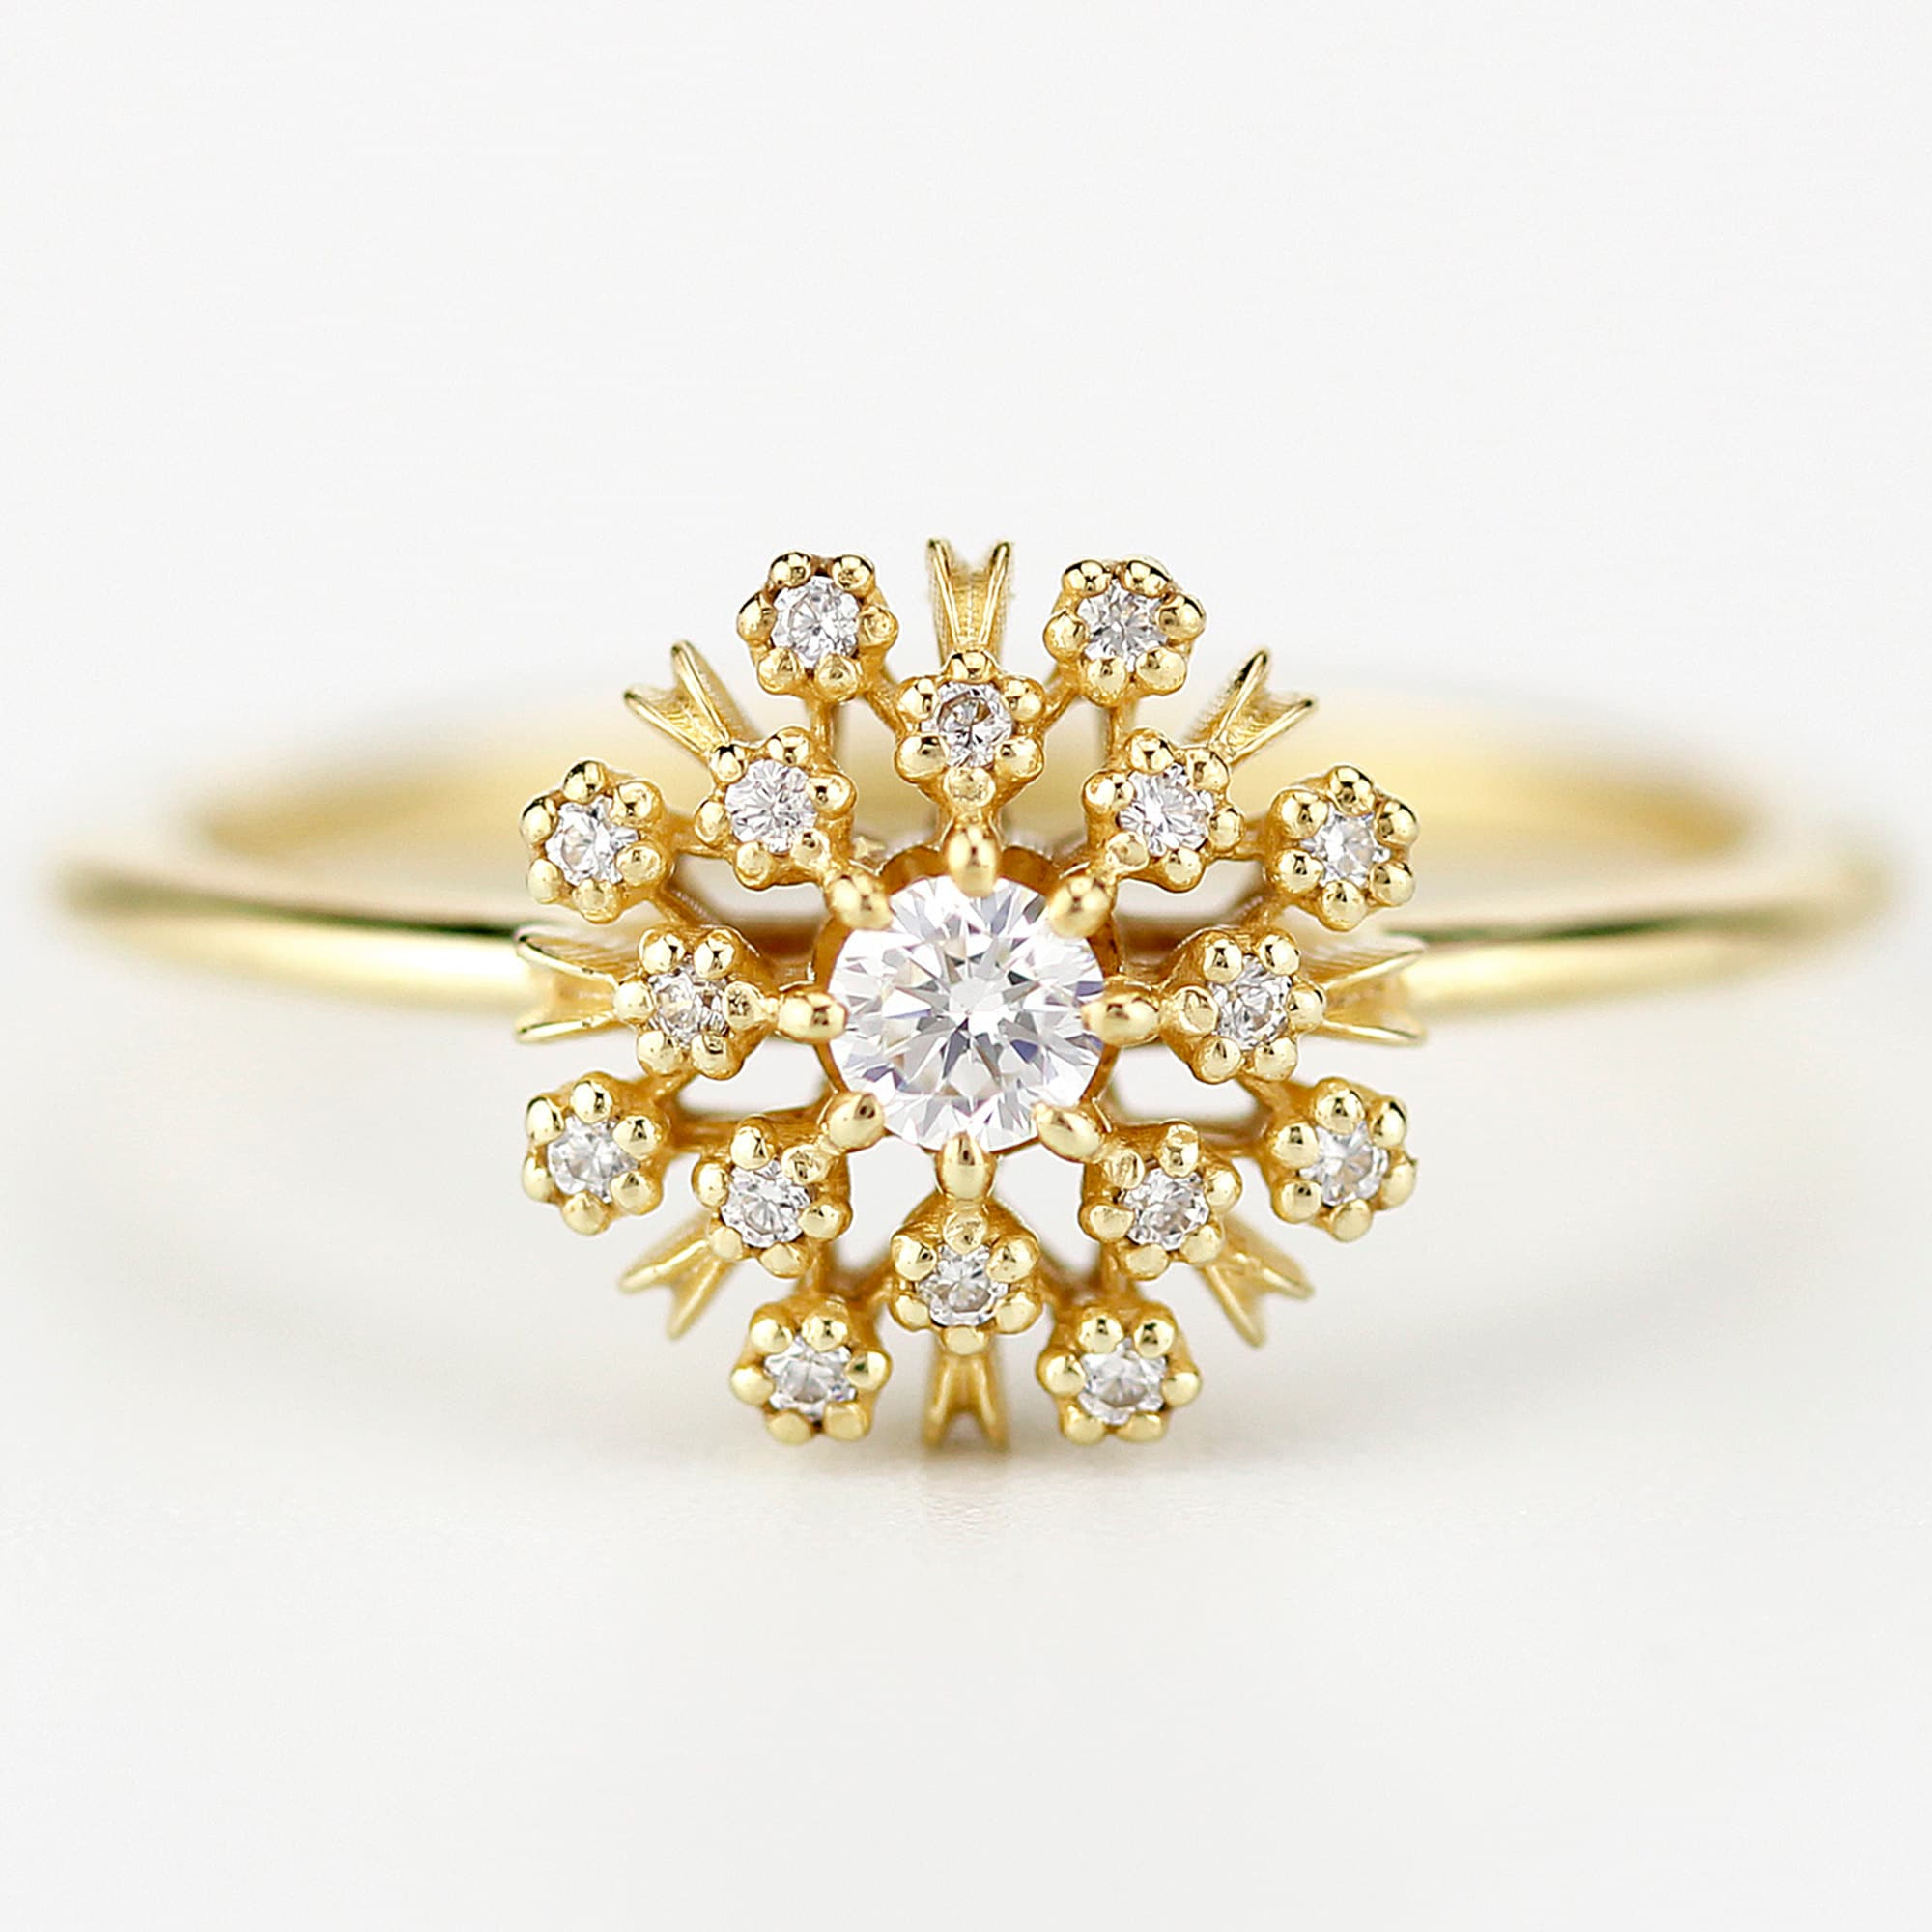 Womens Designer Engagement Ring With Full Crystal Studded Jewelry LH